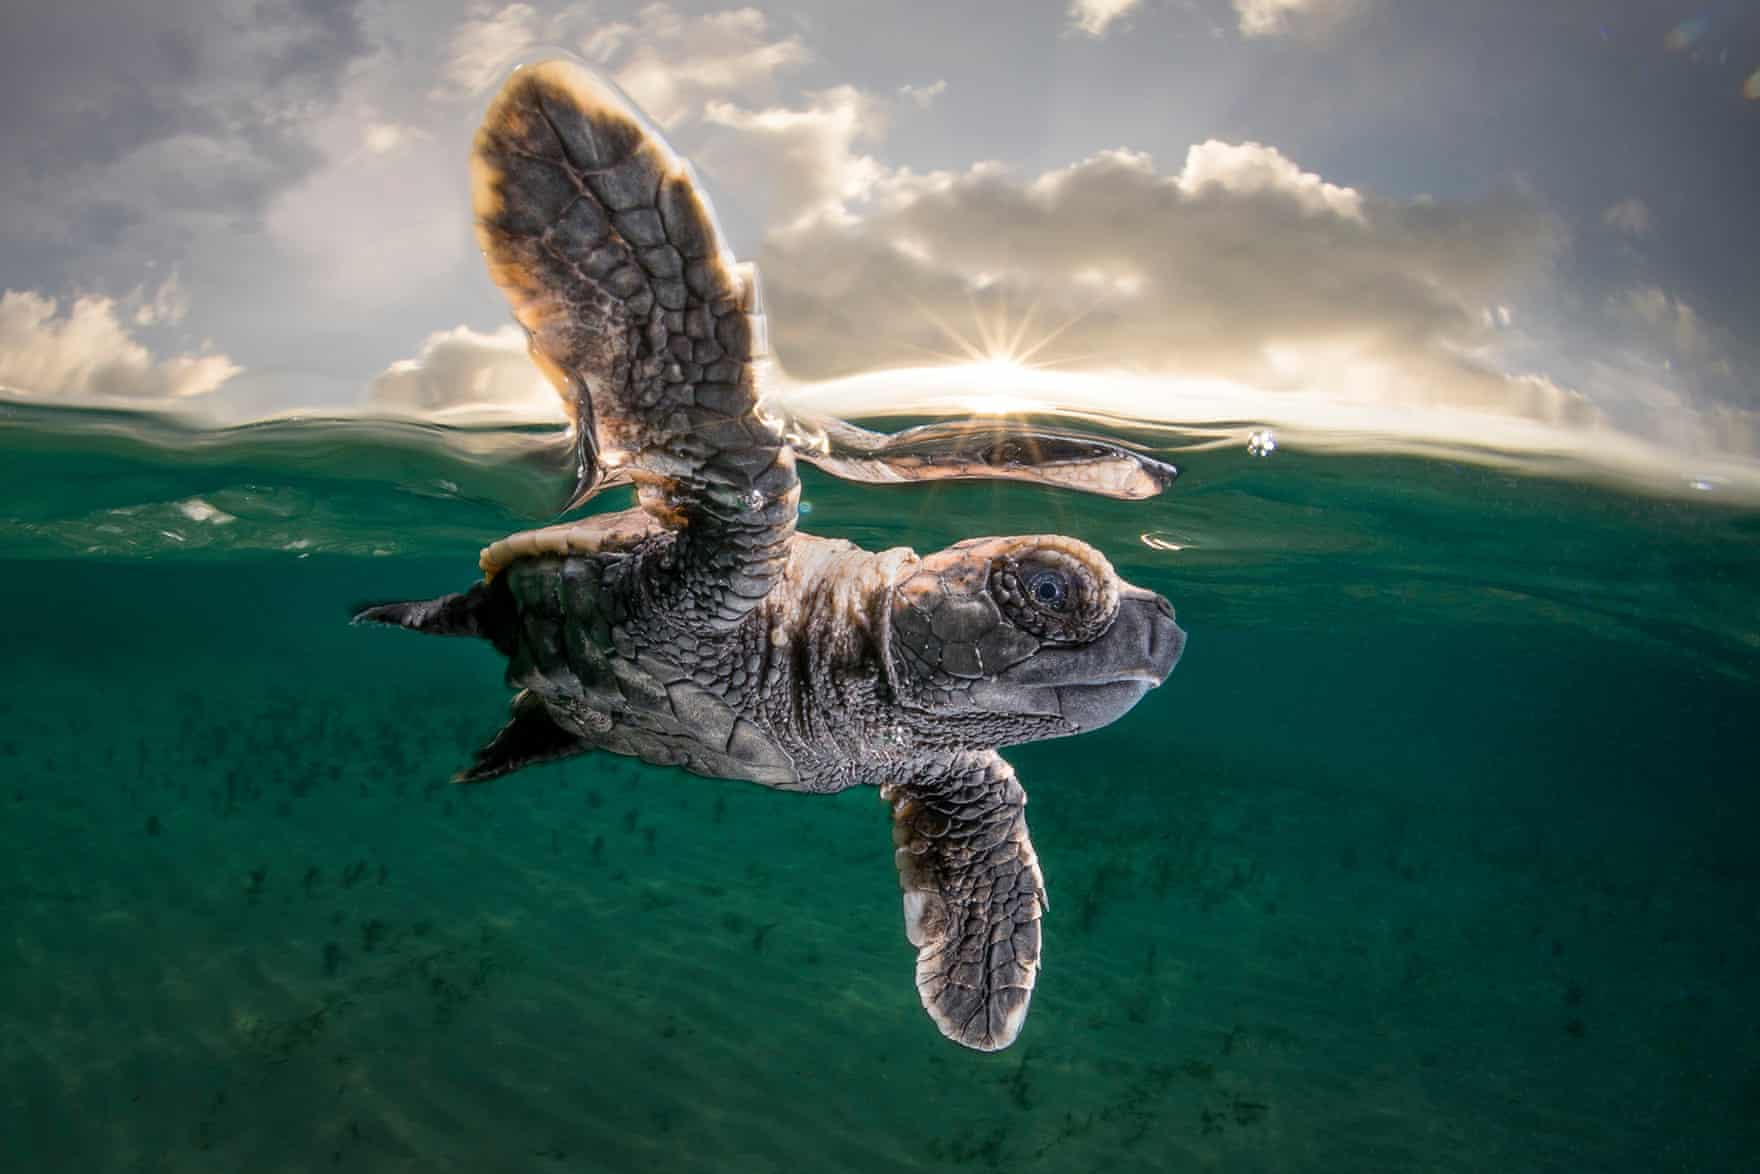 A hawksbill turtle hatchling, just 3.5cm long and a few minutes old, takes its first swim